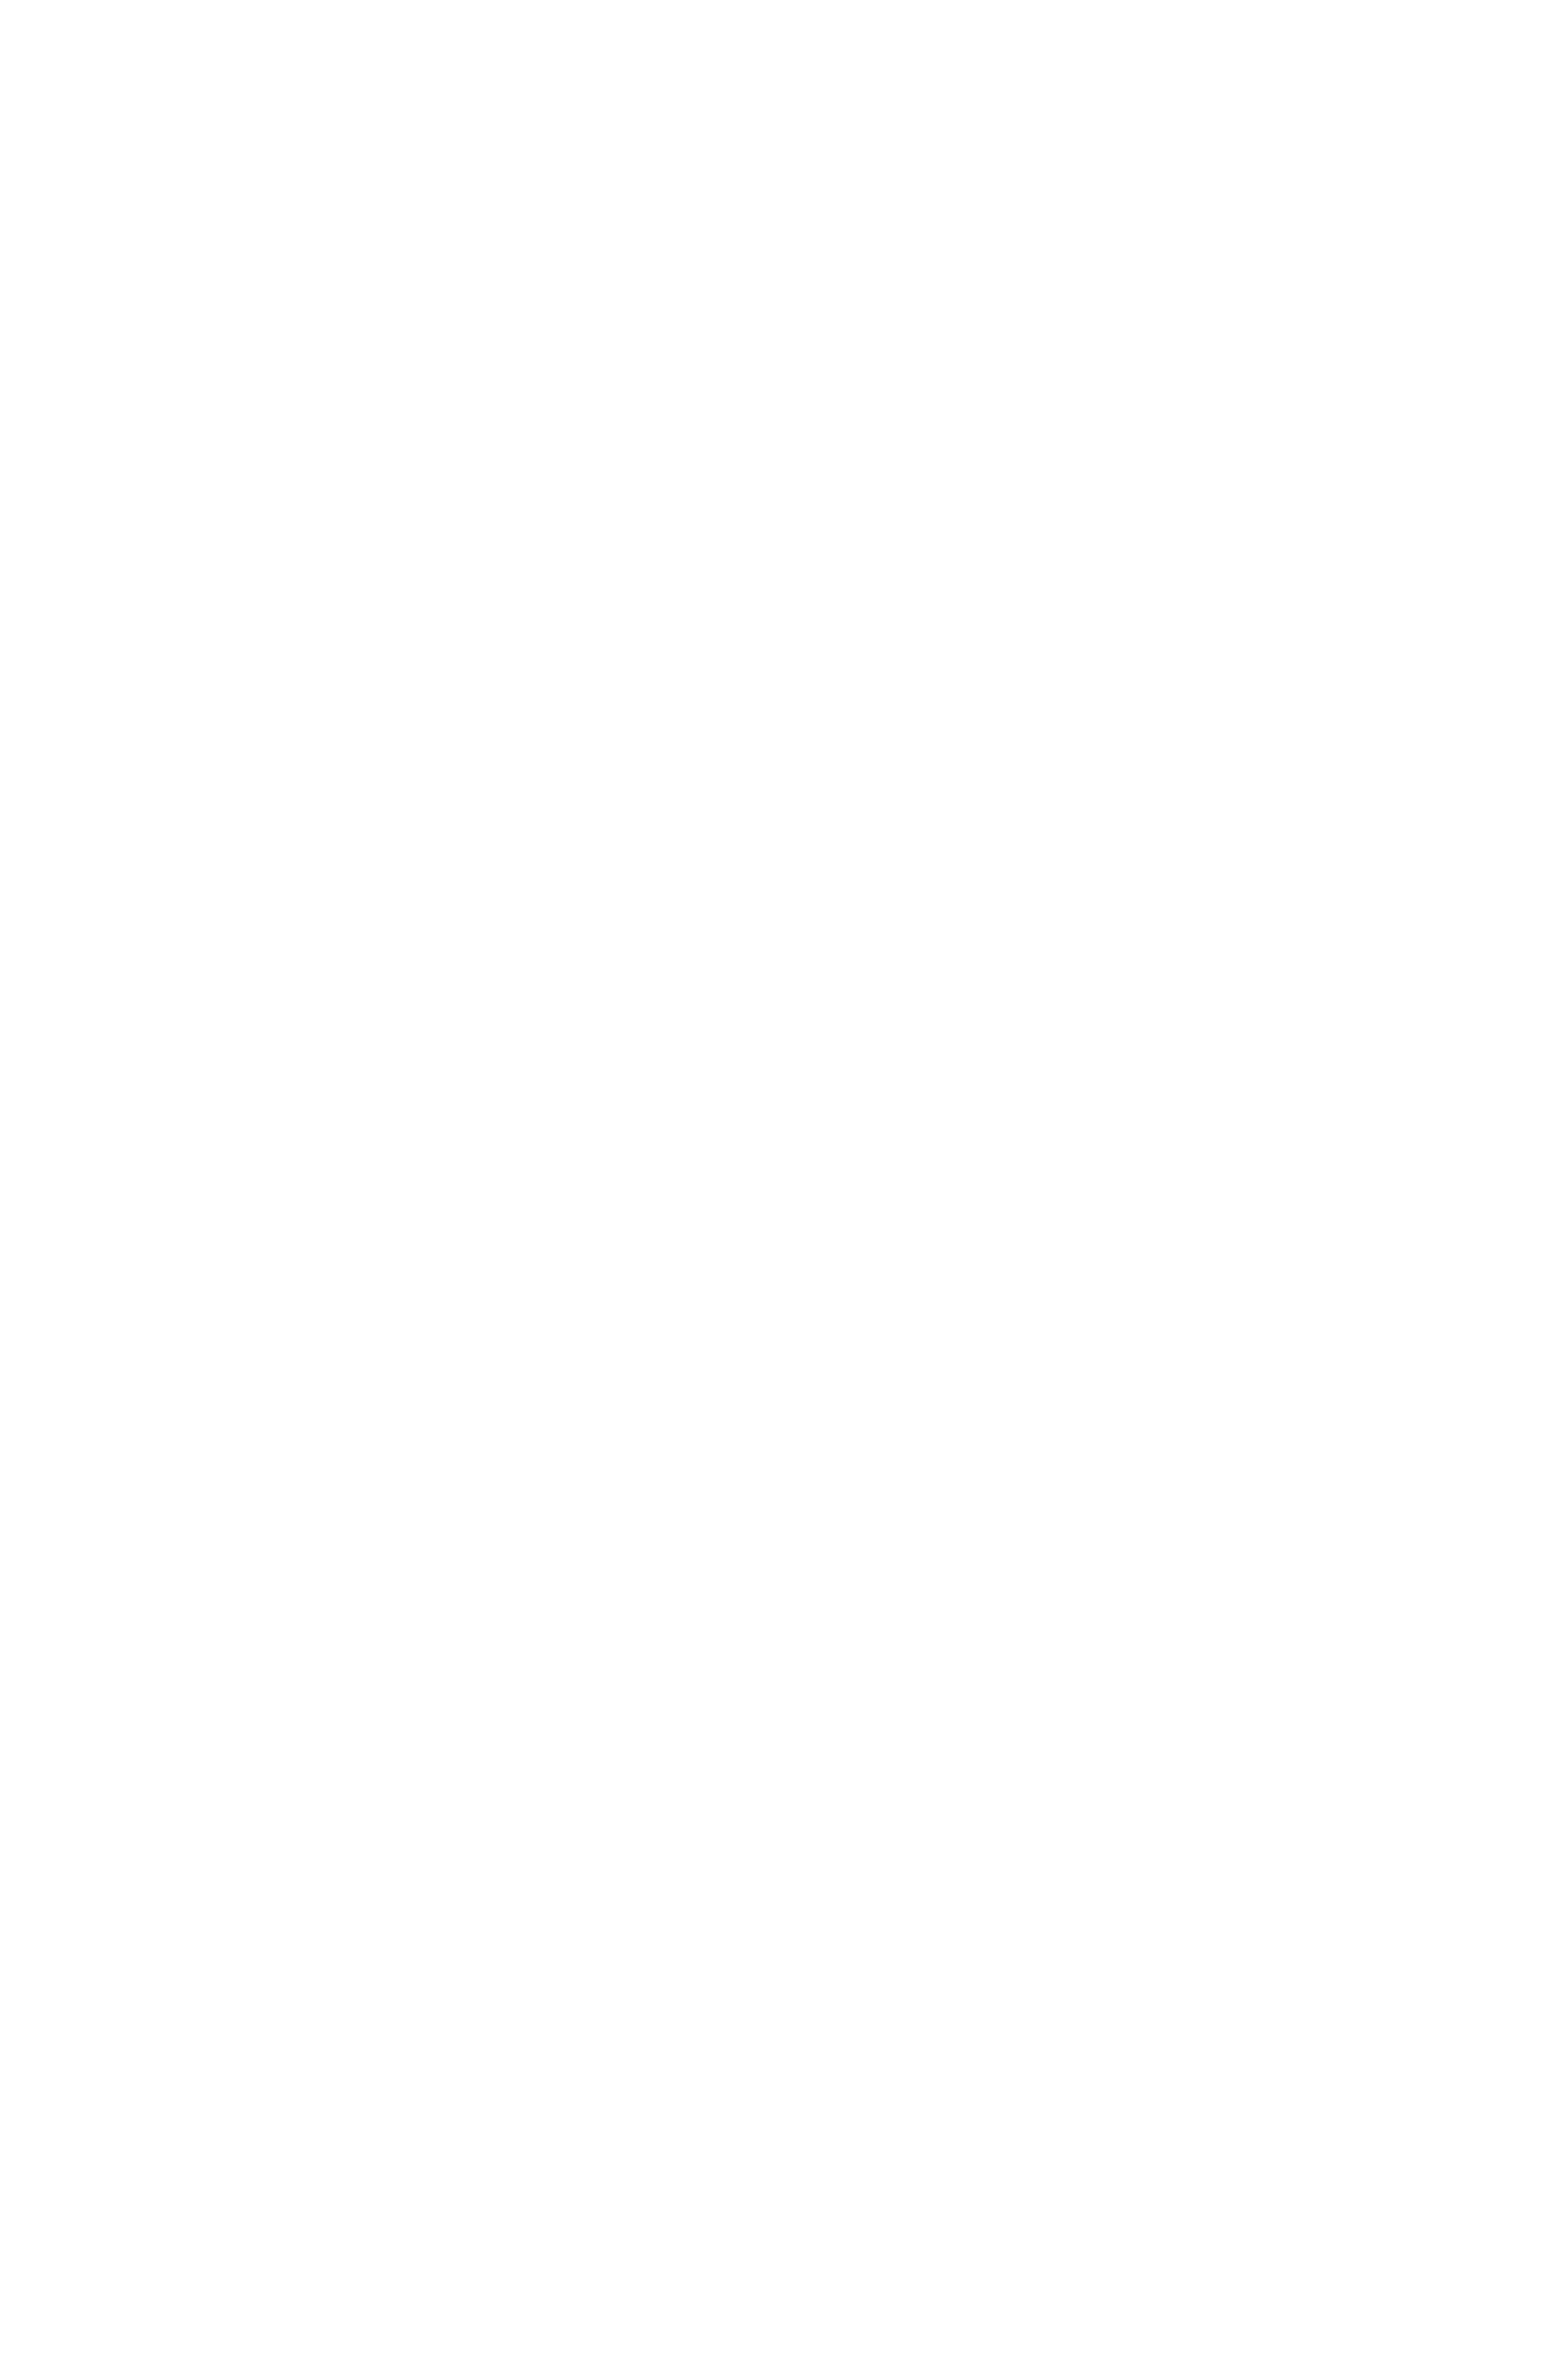 image of the euro repar logo